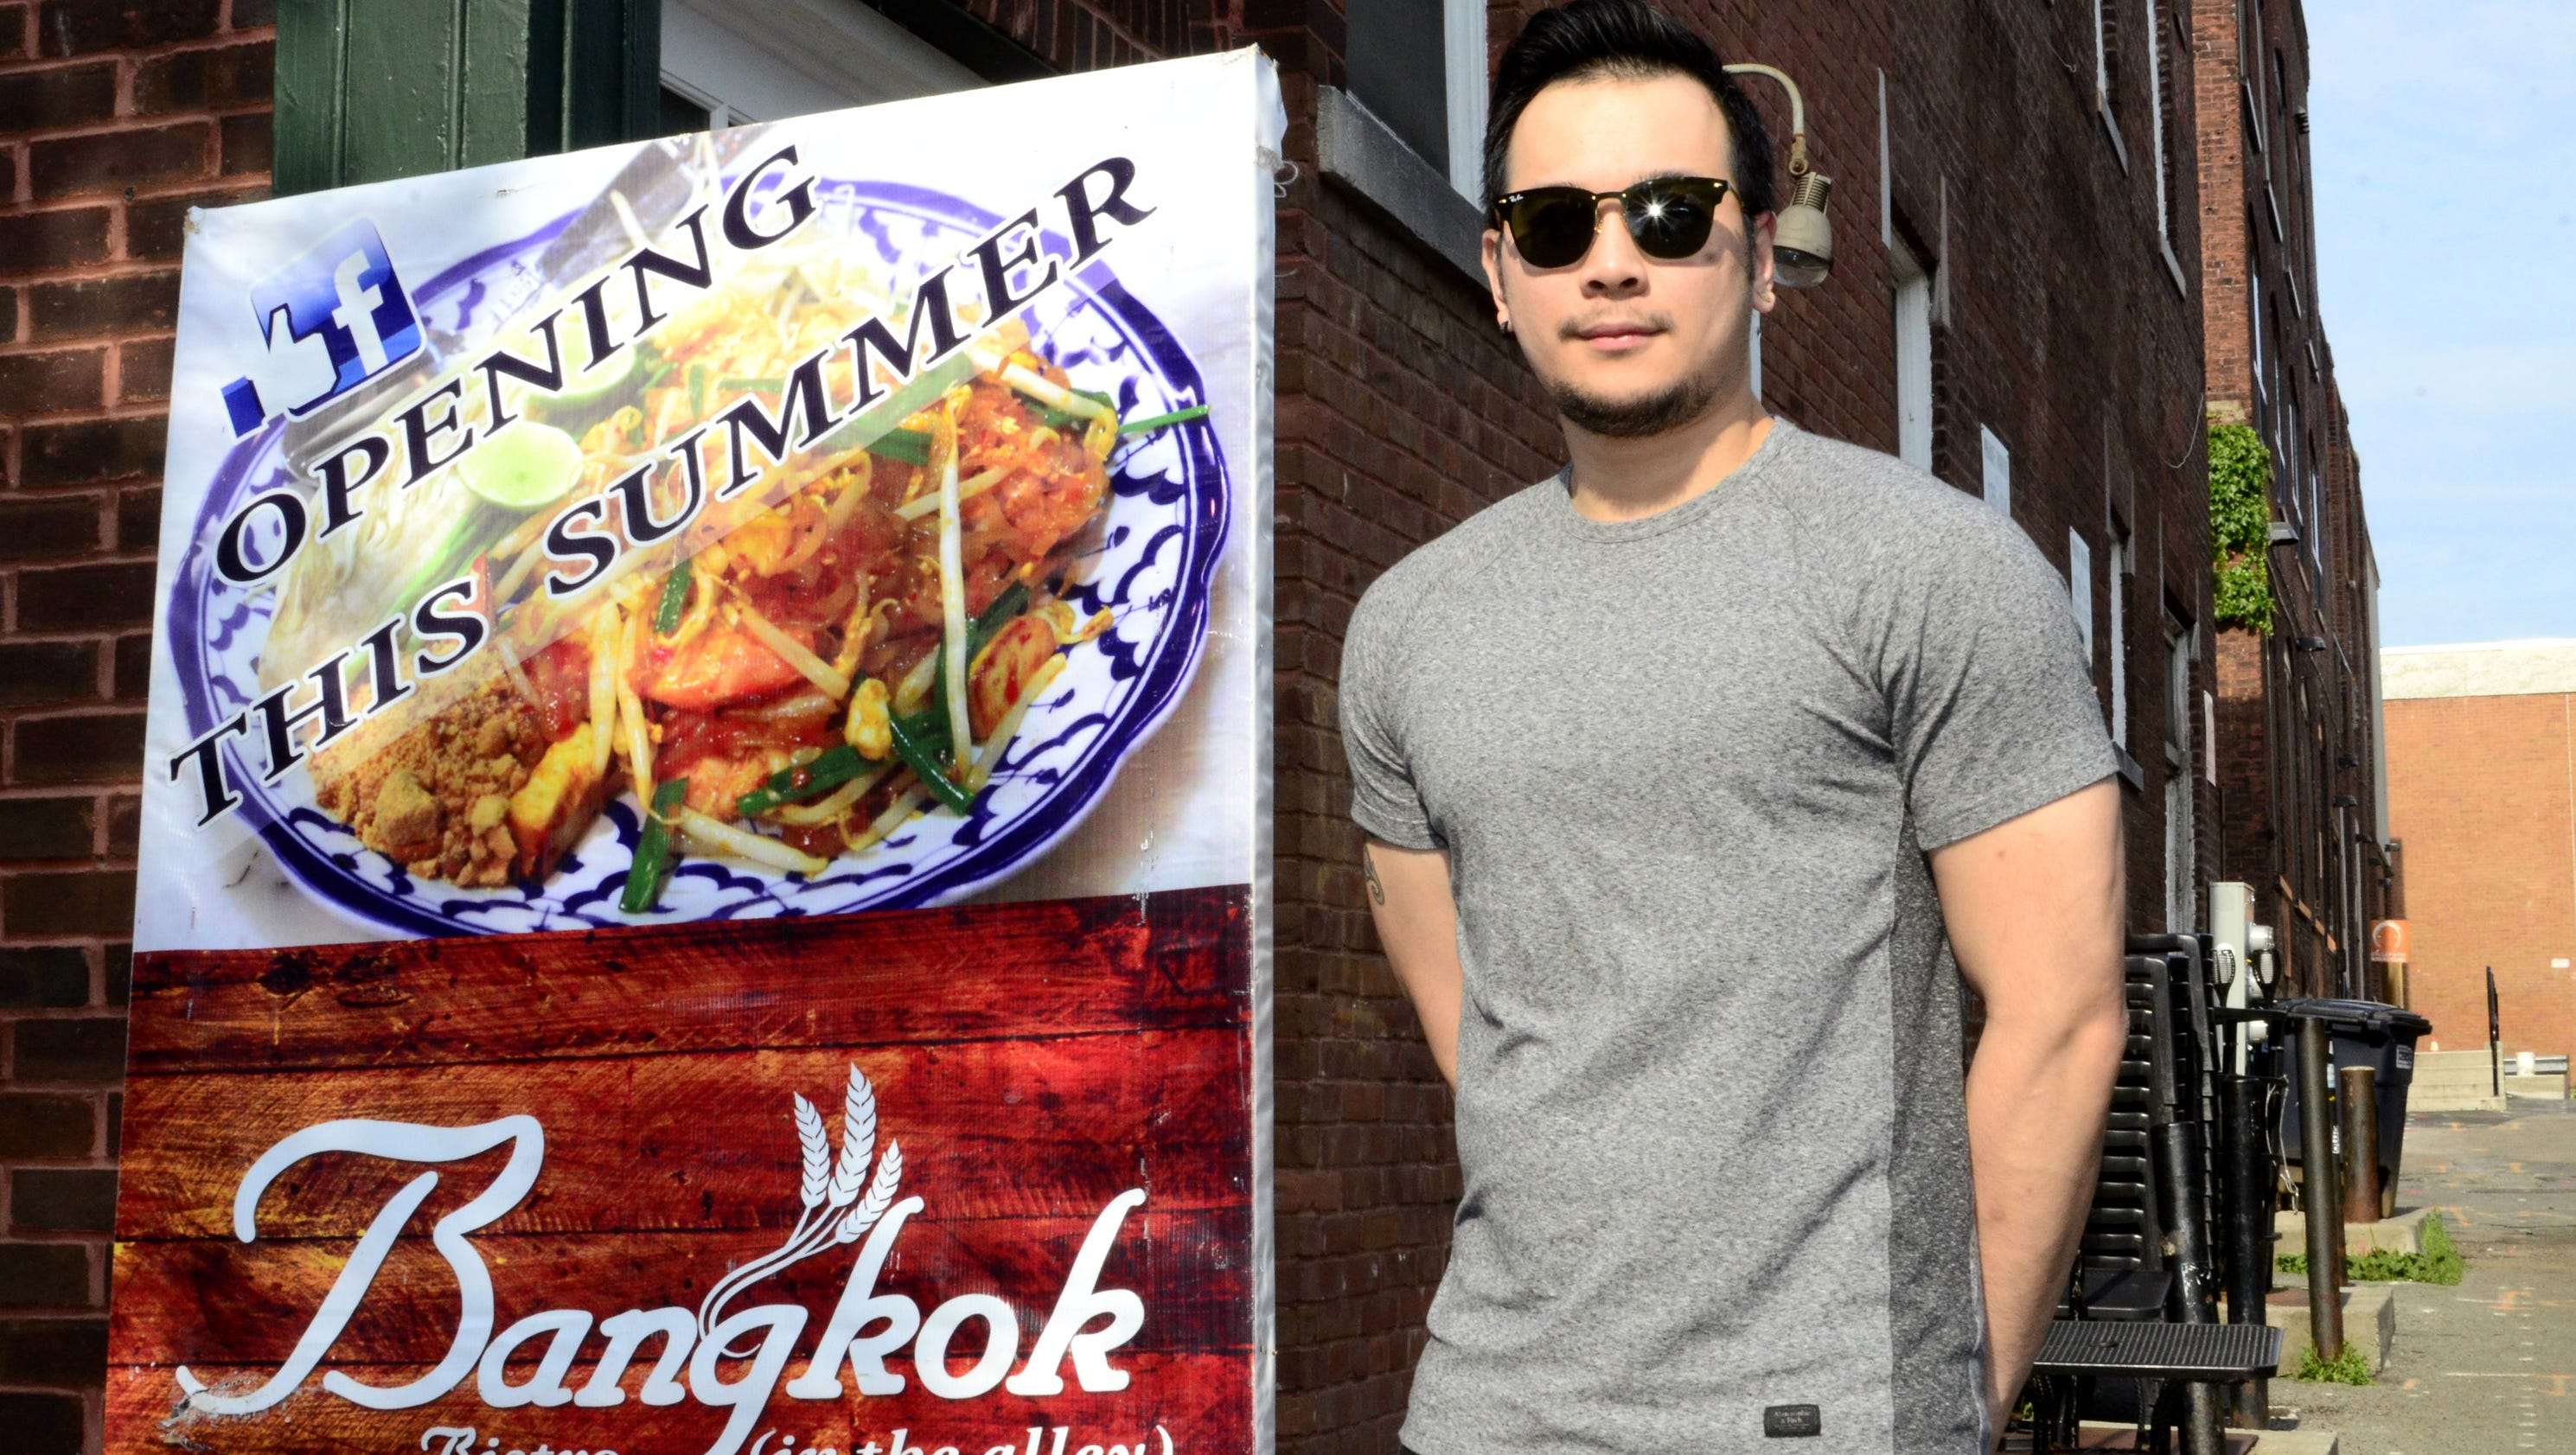 bangkok bistro to be born again this summer in downtown burlington